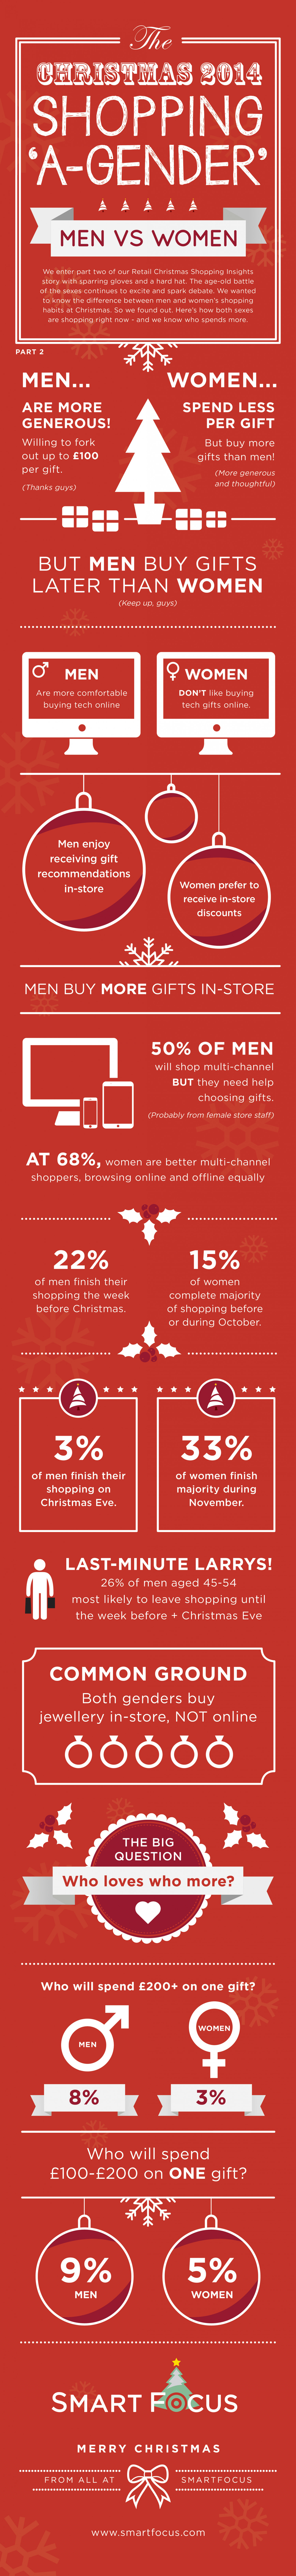 Men vs Women - Who spends more at Christmas?  Infographic